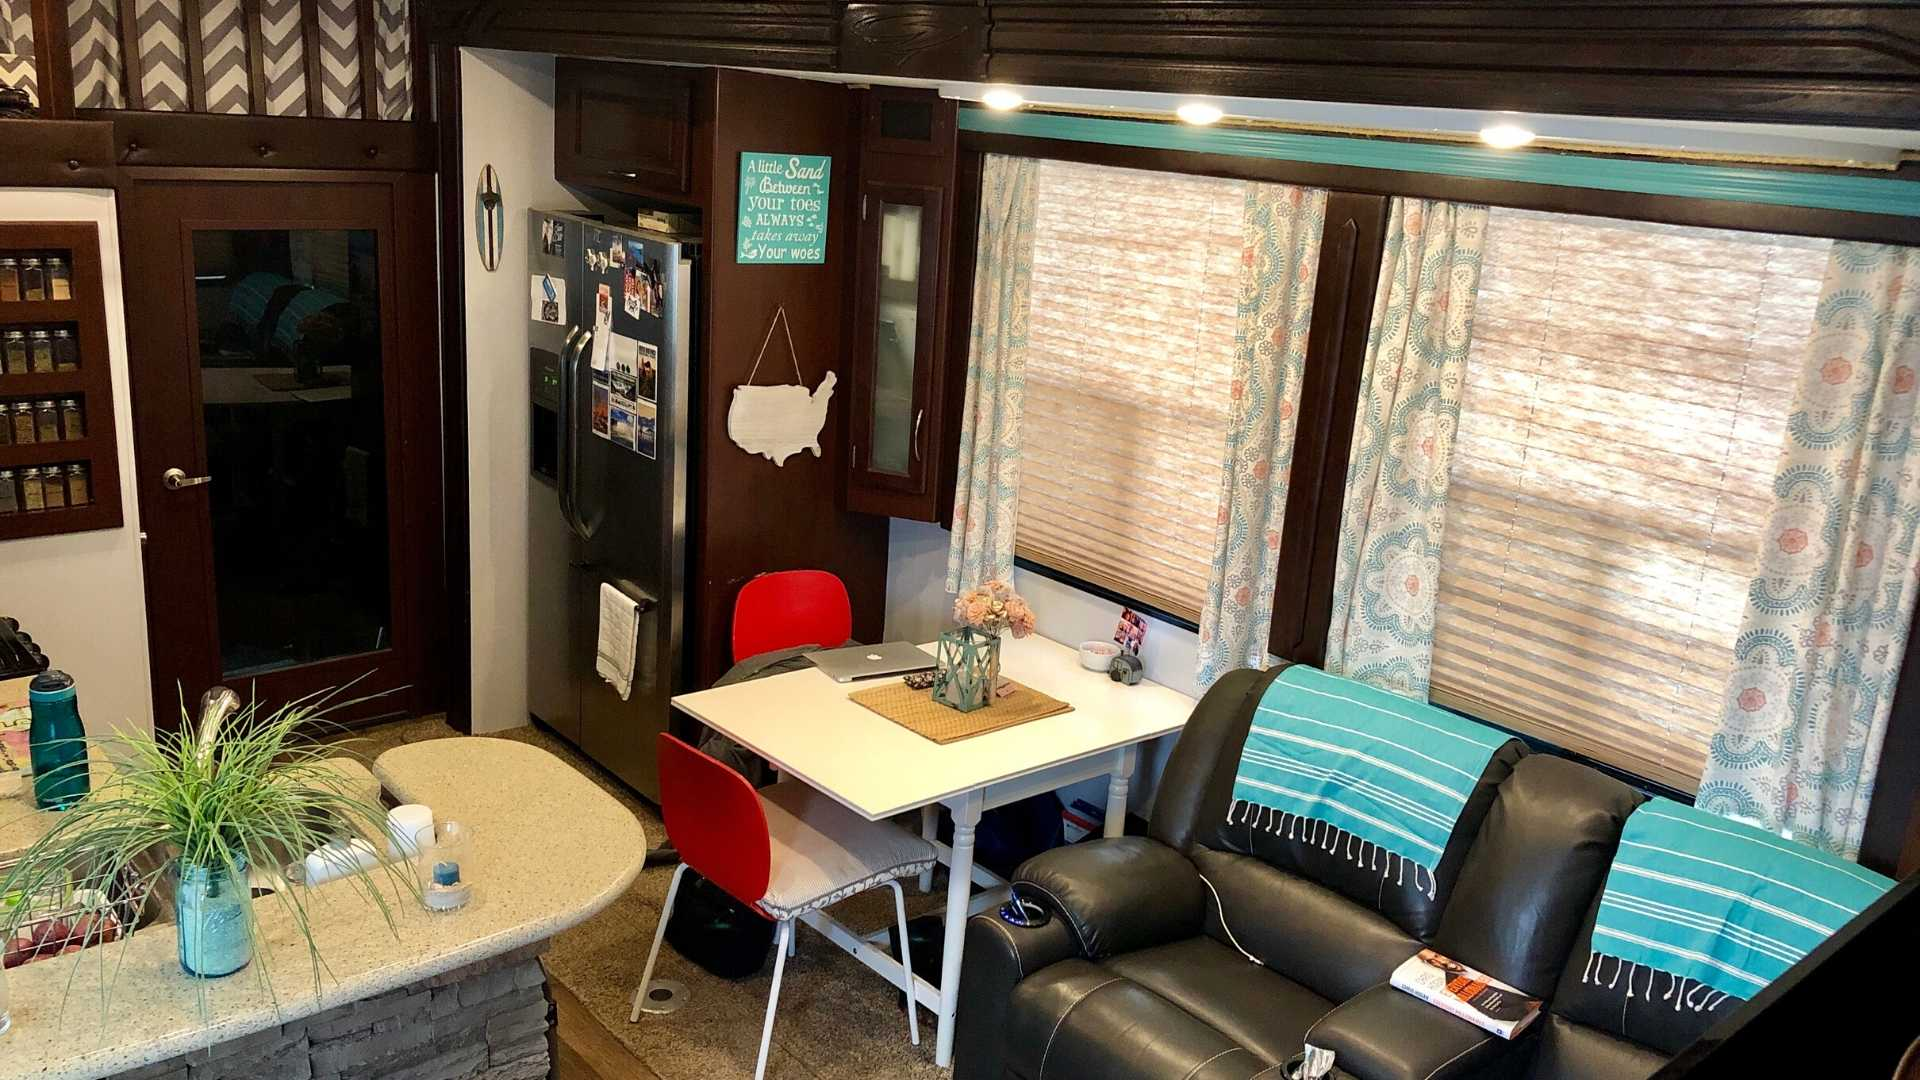 View of an RV's galley area.